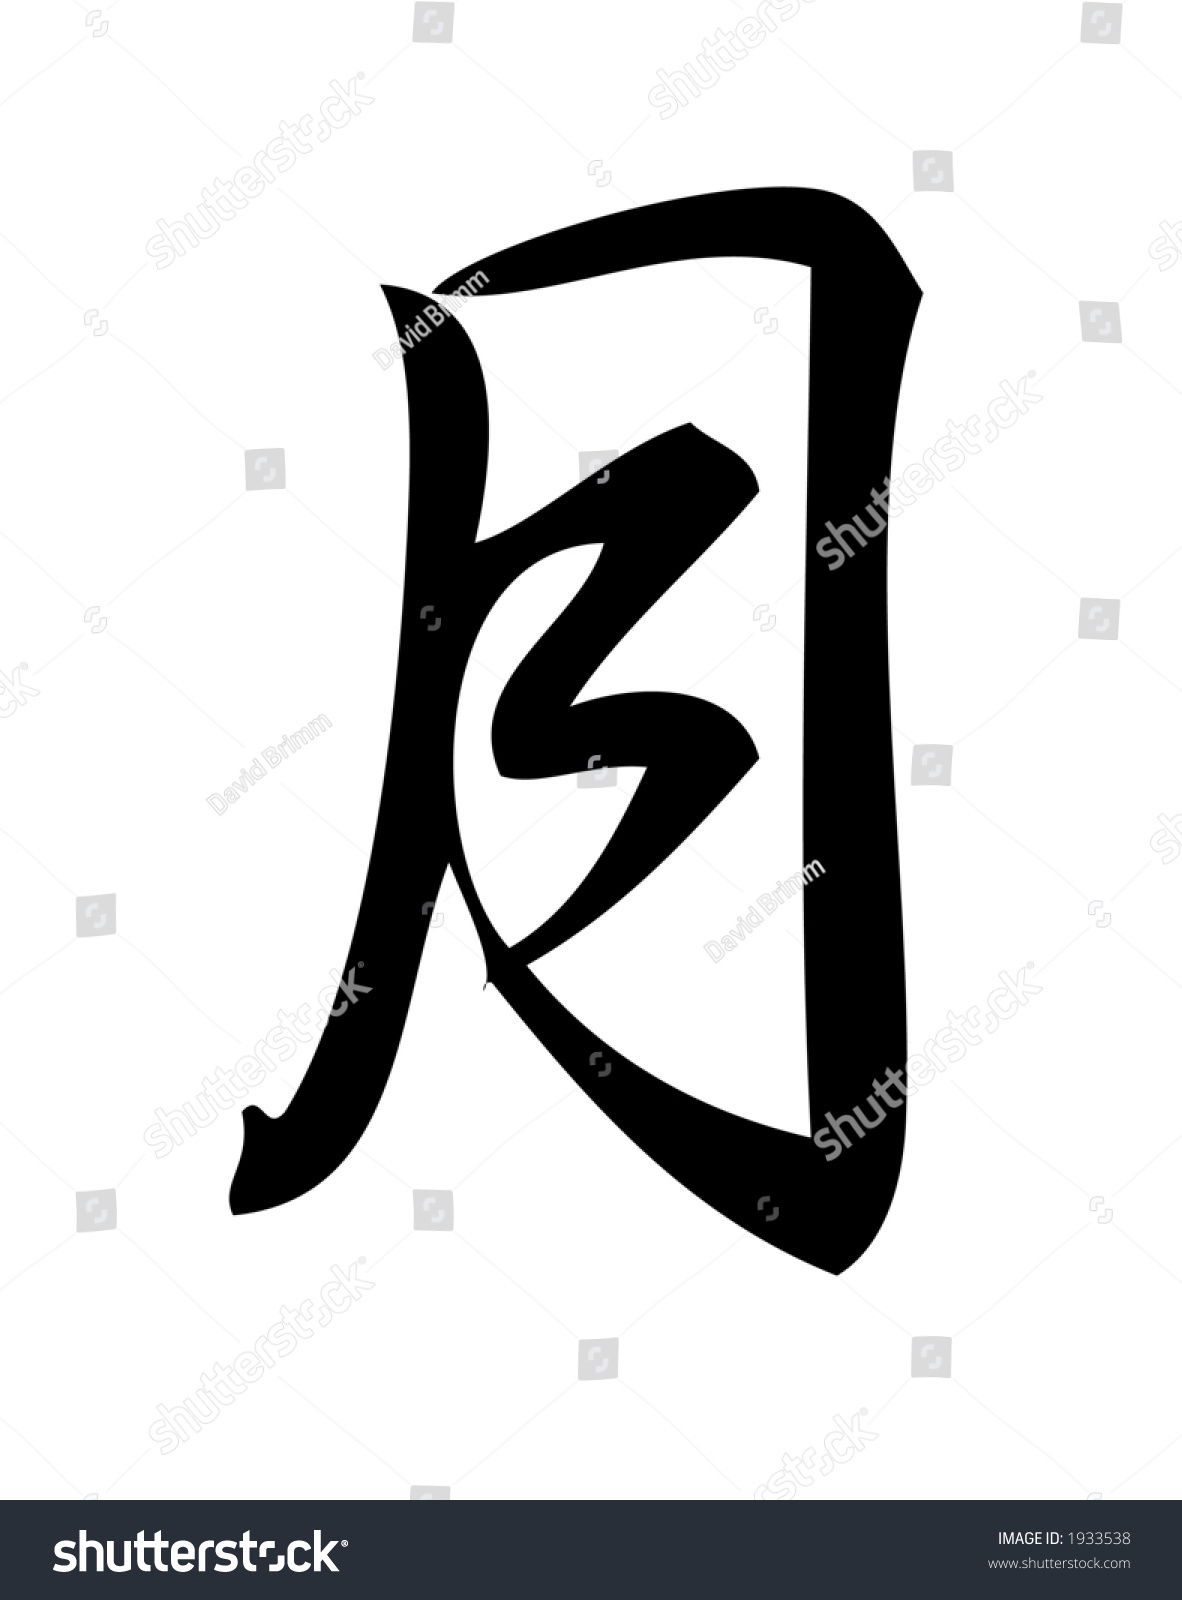 Kanji character moon month monday kanji stock illustration 1933538 kanji character for moon month monday kanji one of three scripts used buycottarizona Gallery